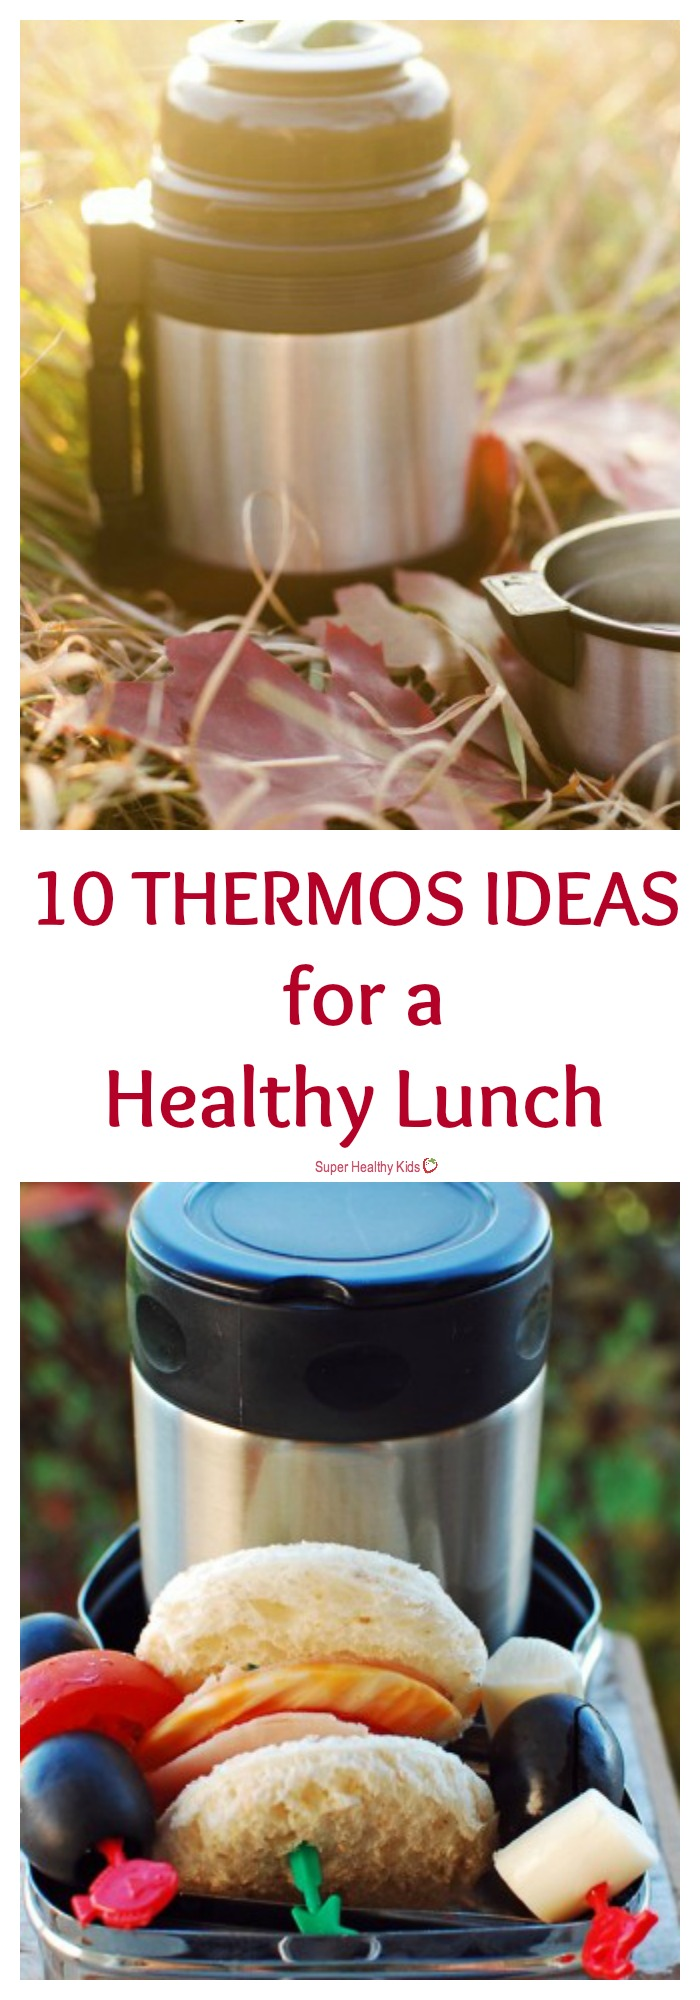 FOOD - 10 Thermos Ideas For A Healthy Lunch. How you can send hot or cold food to school! http://www.superhealthykids.com/10-thermos-ideas-for-a-healthy-lunch/